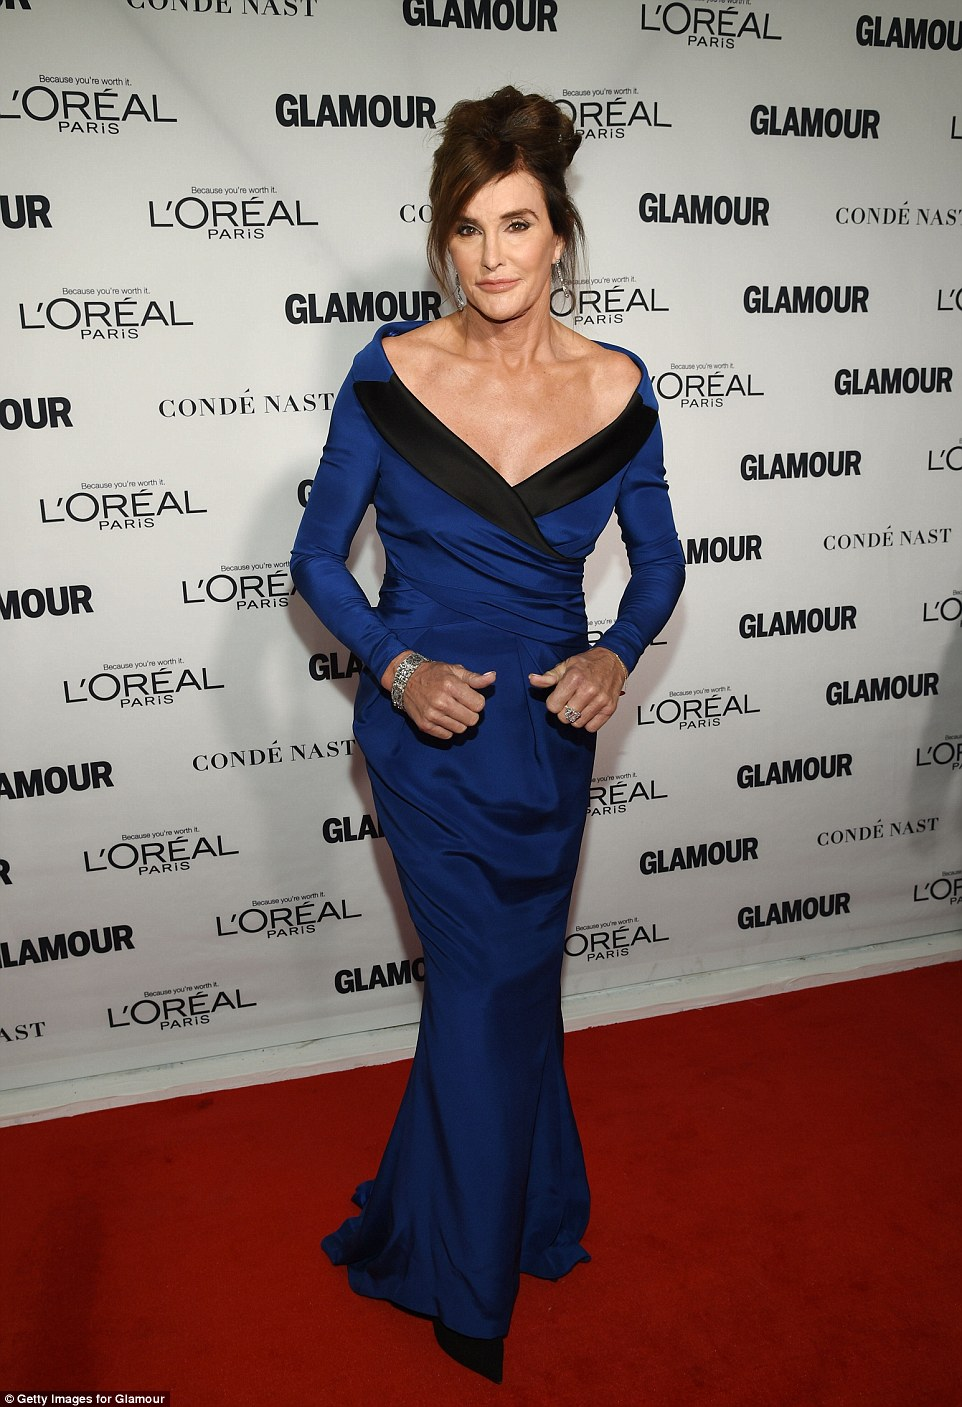 2E48B46900000578-3311219-Stunning_Caitlyn_Jenner_wowed_the_crowd_in_her_high_octane_look_-a-104_1447140243898